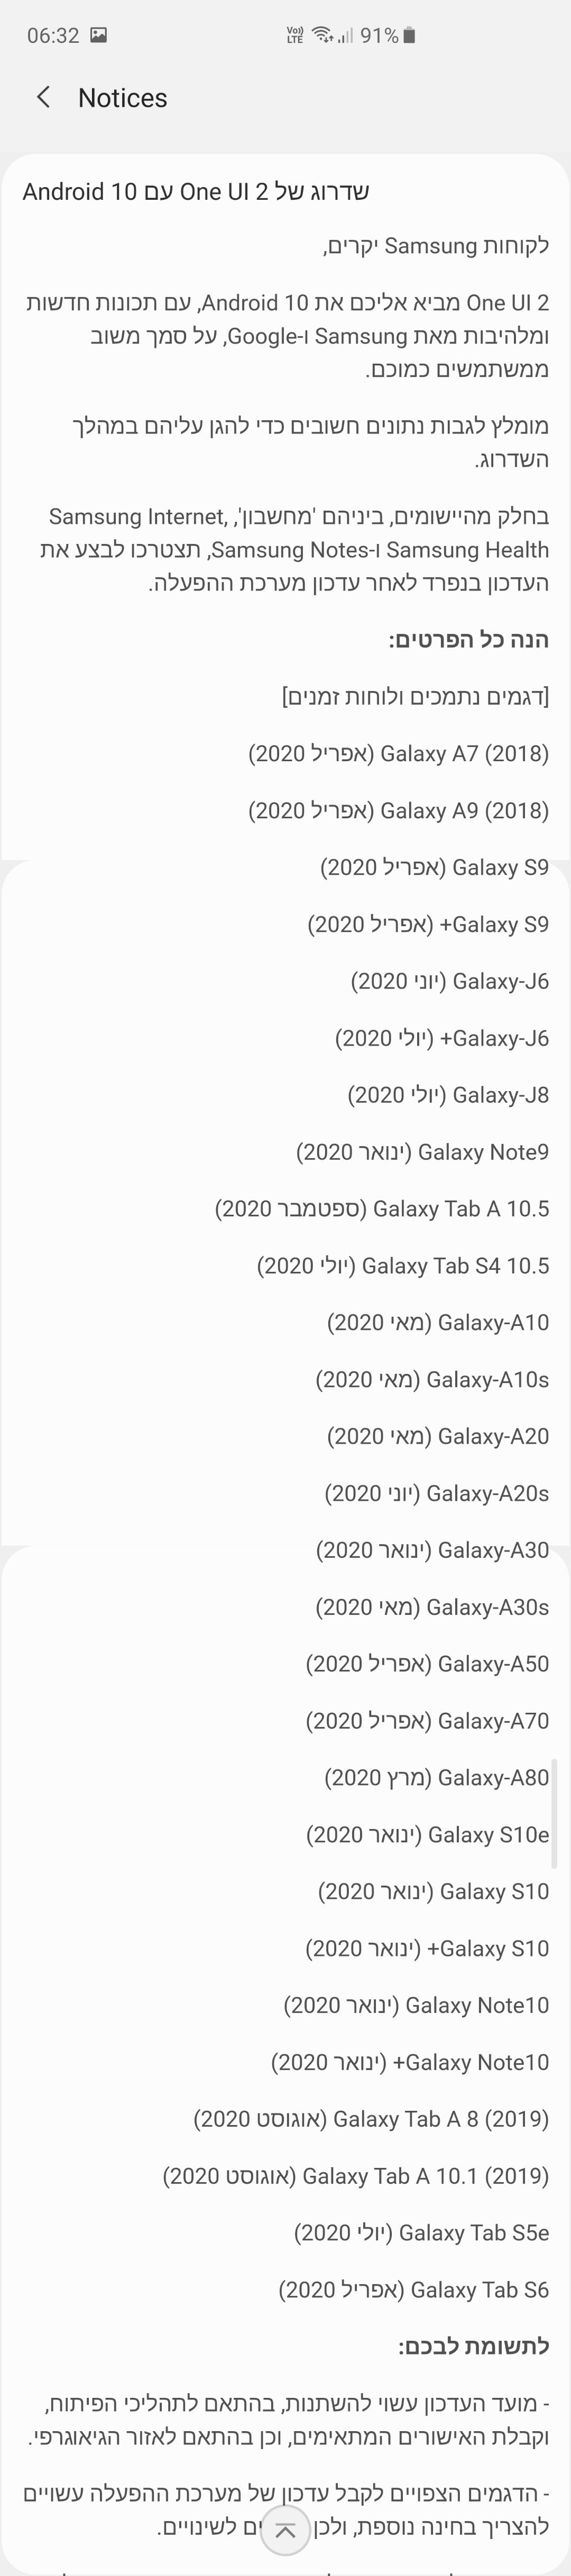 Stable Galaxy S10 and Note 10 Android 10 update coming in January